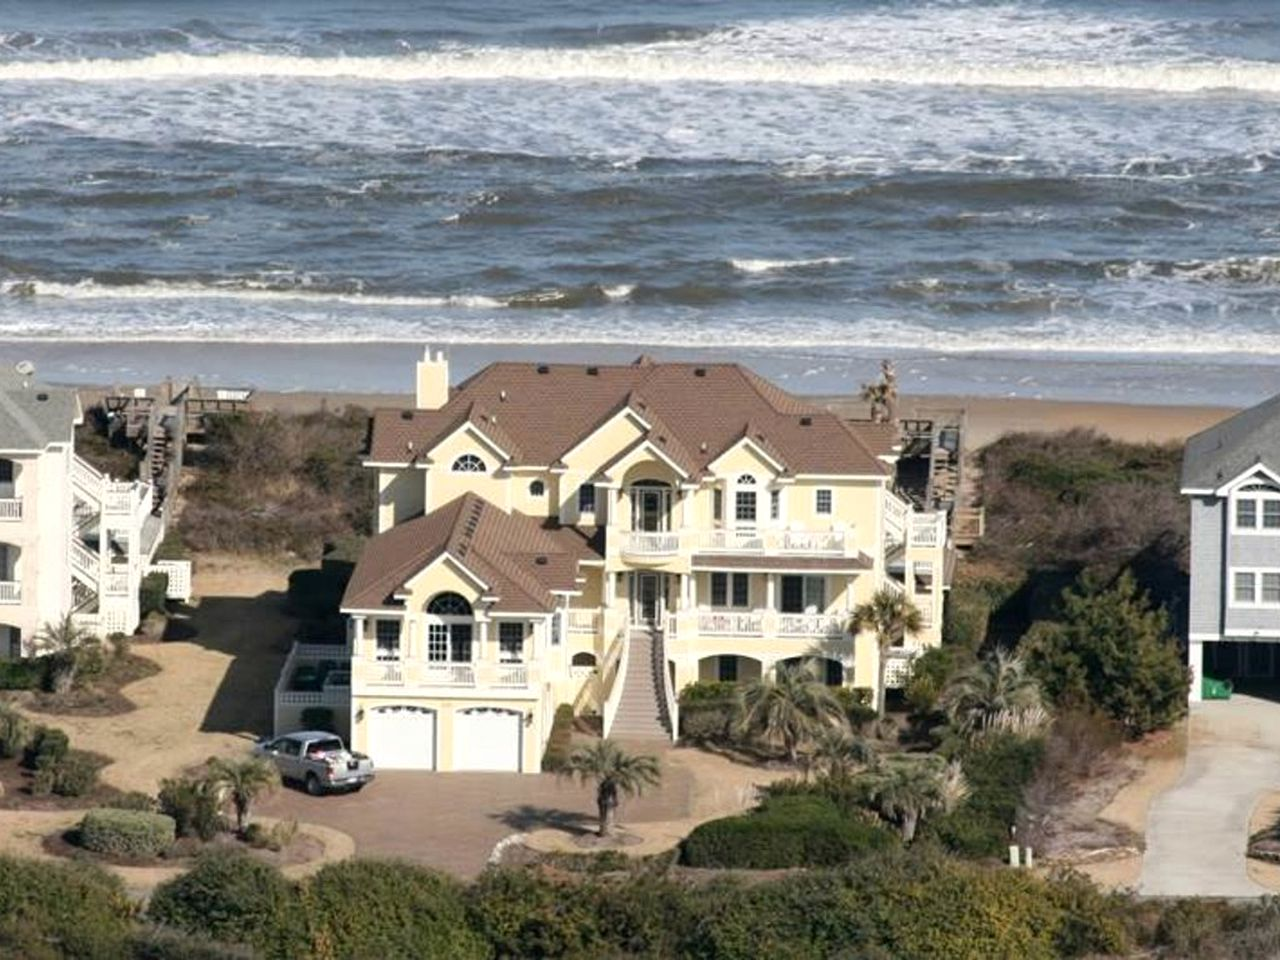 Beach Houses (Corolla, North Carolina, United States)